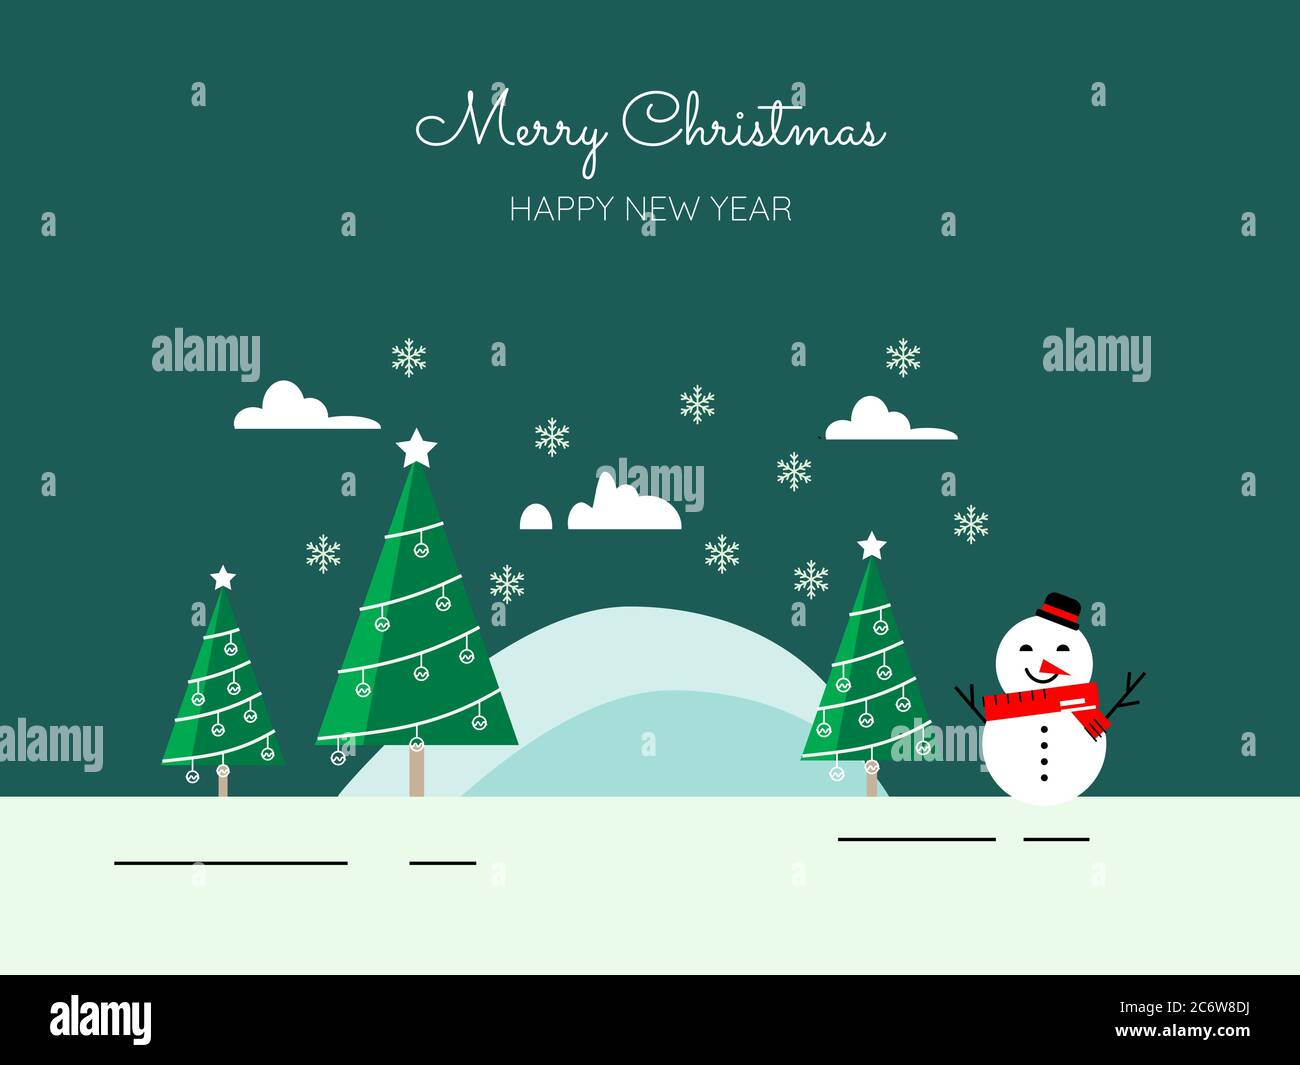 background of illustration merry christmas and happy new year 2021 greetings card template vector or illustration stock vector image art alamy https www alamy com background of illustration merry christmas and happy new year 2021 greetings card template vector or illustration image365661118 html